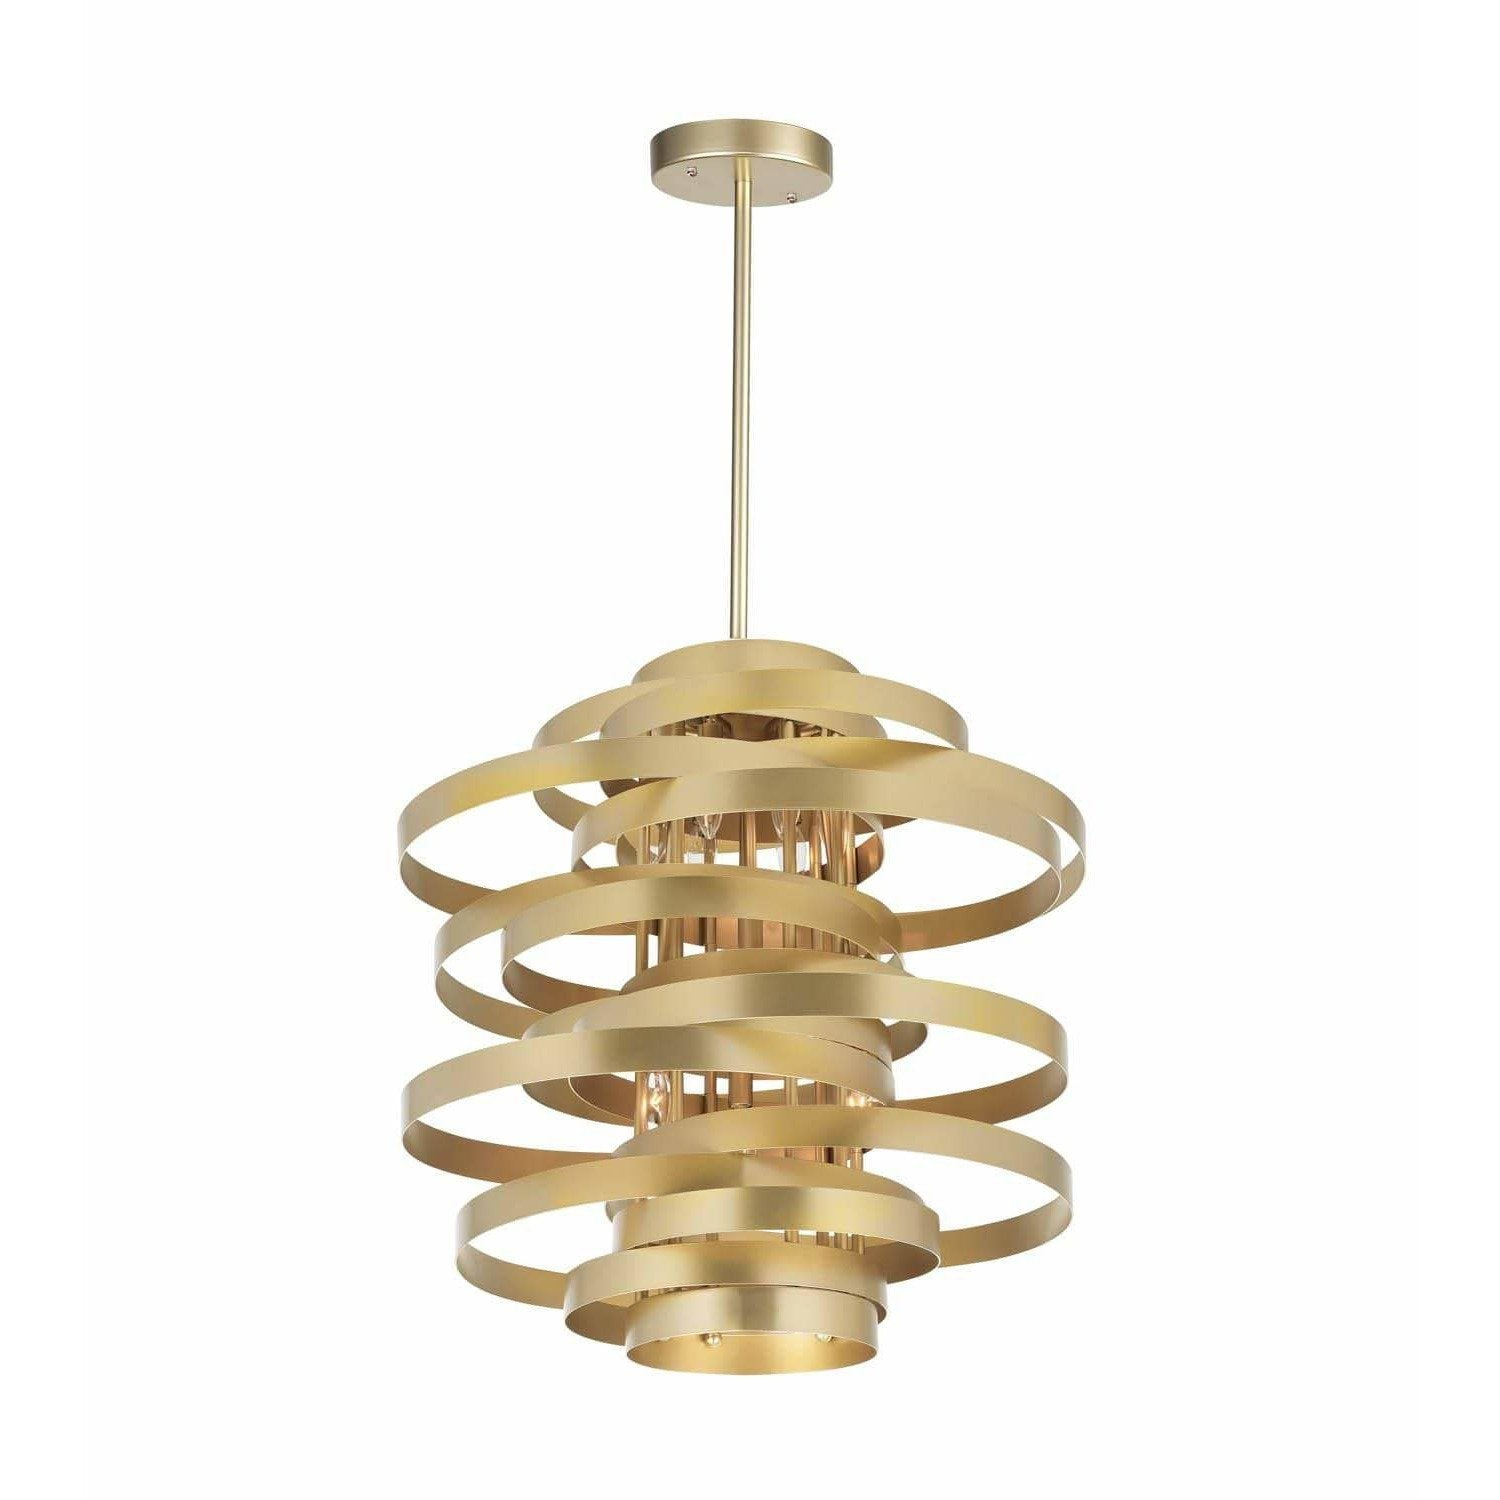 CWI Lighting Chandeliers Gold Leaf Elizabetta 6 Light Chandelier with Gold Leaf Finish by CWI Lighting 1068P18-6-620